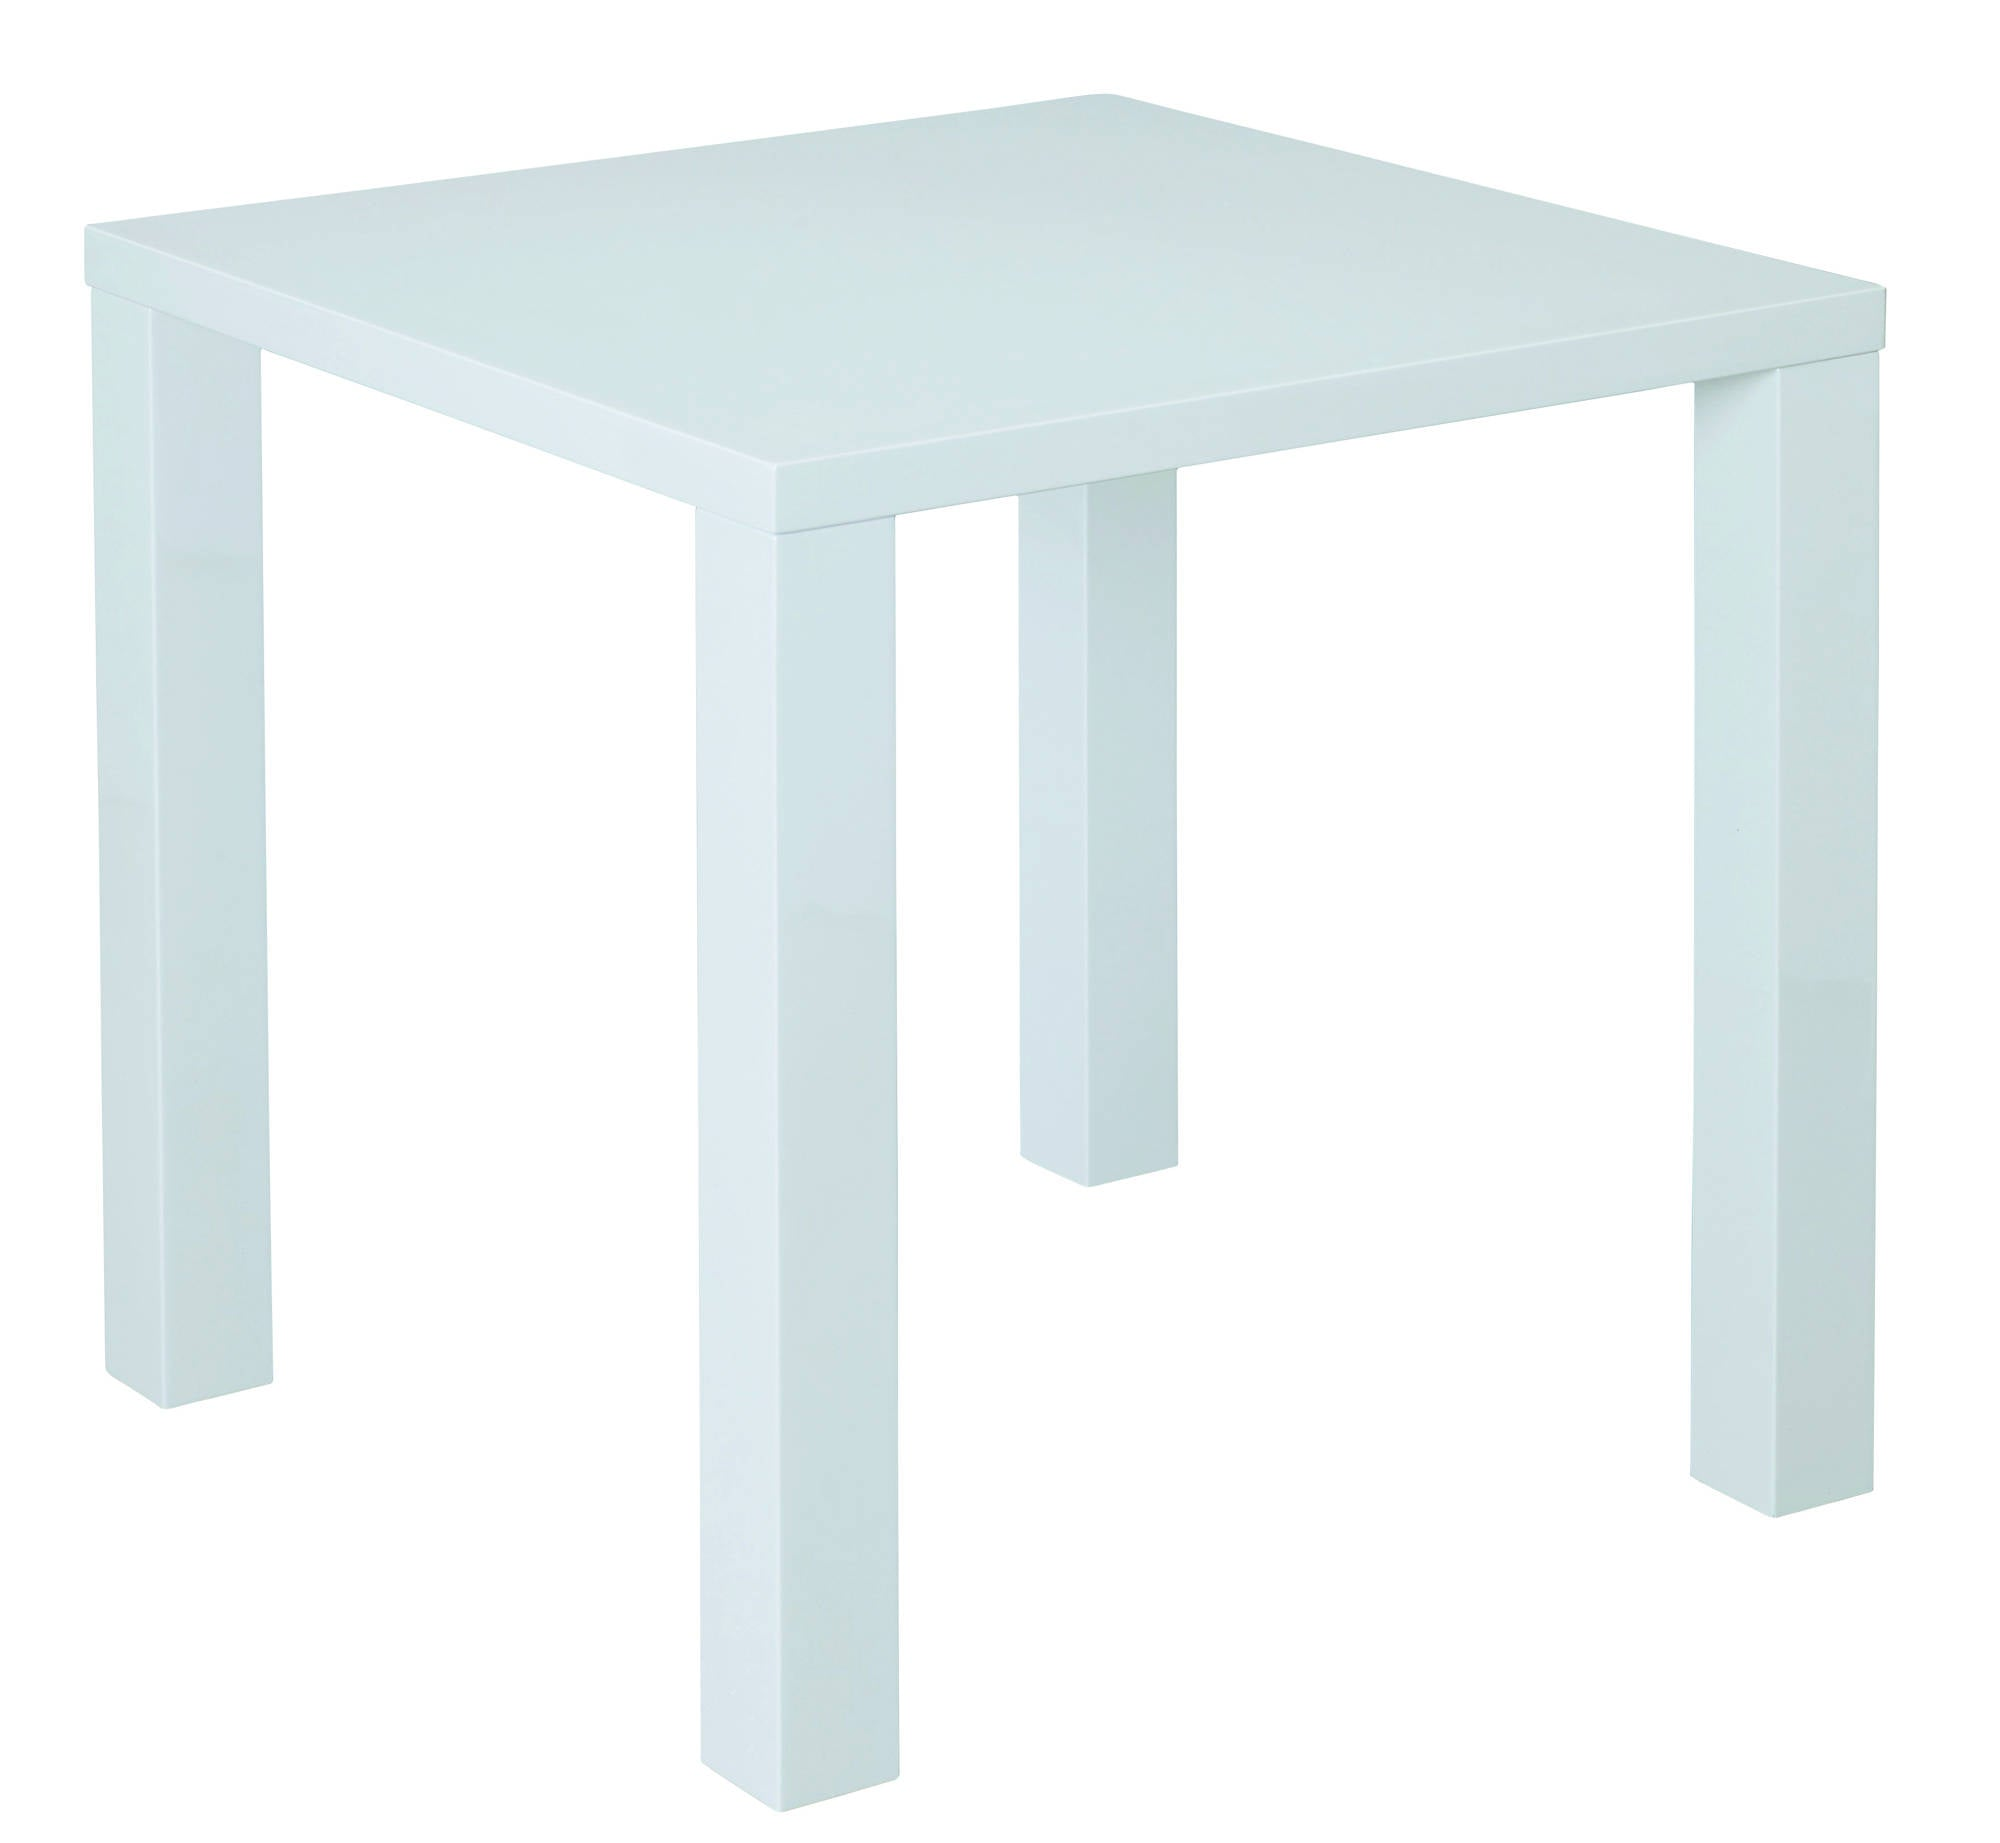 Sterling Small Dining Table in White - Ezzo